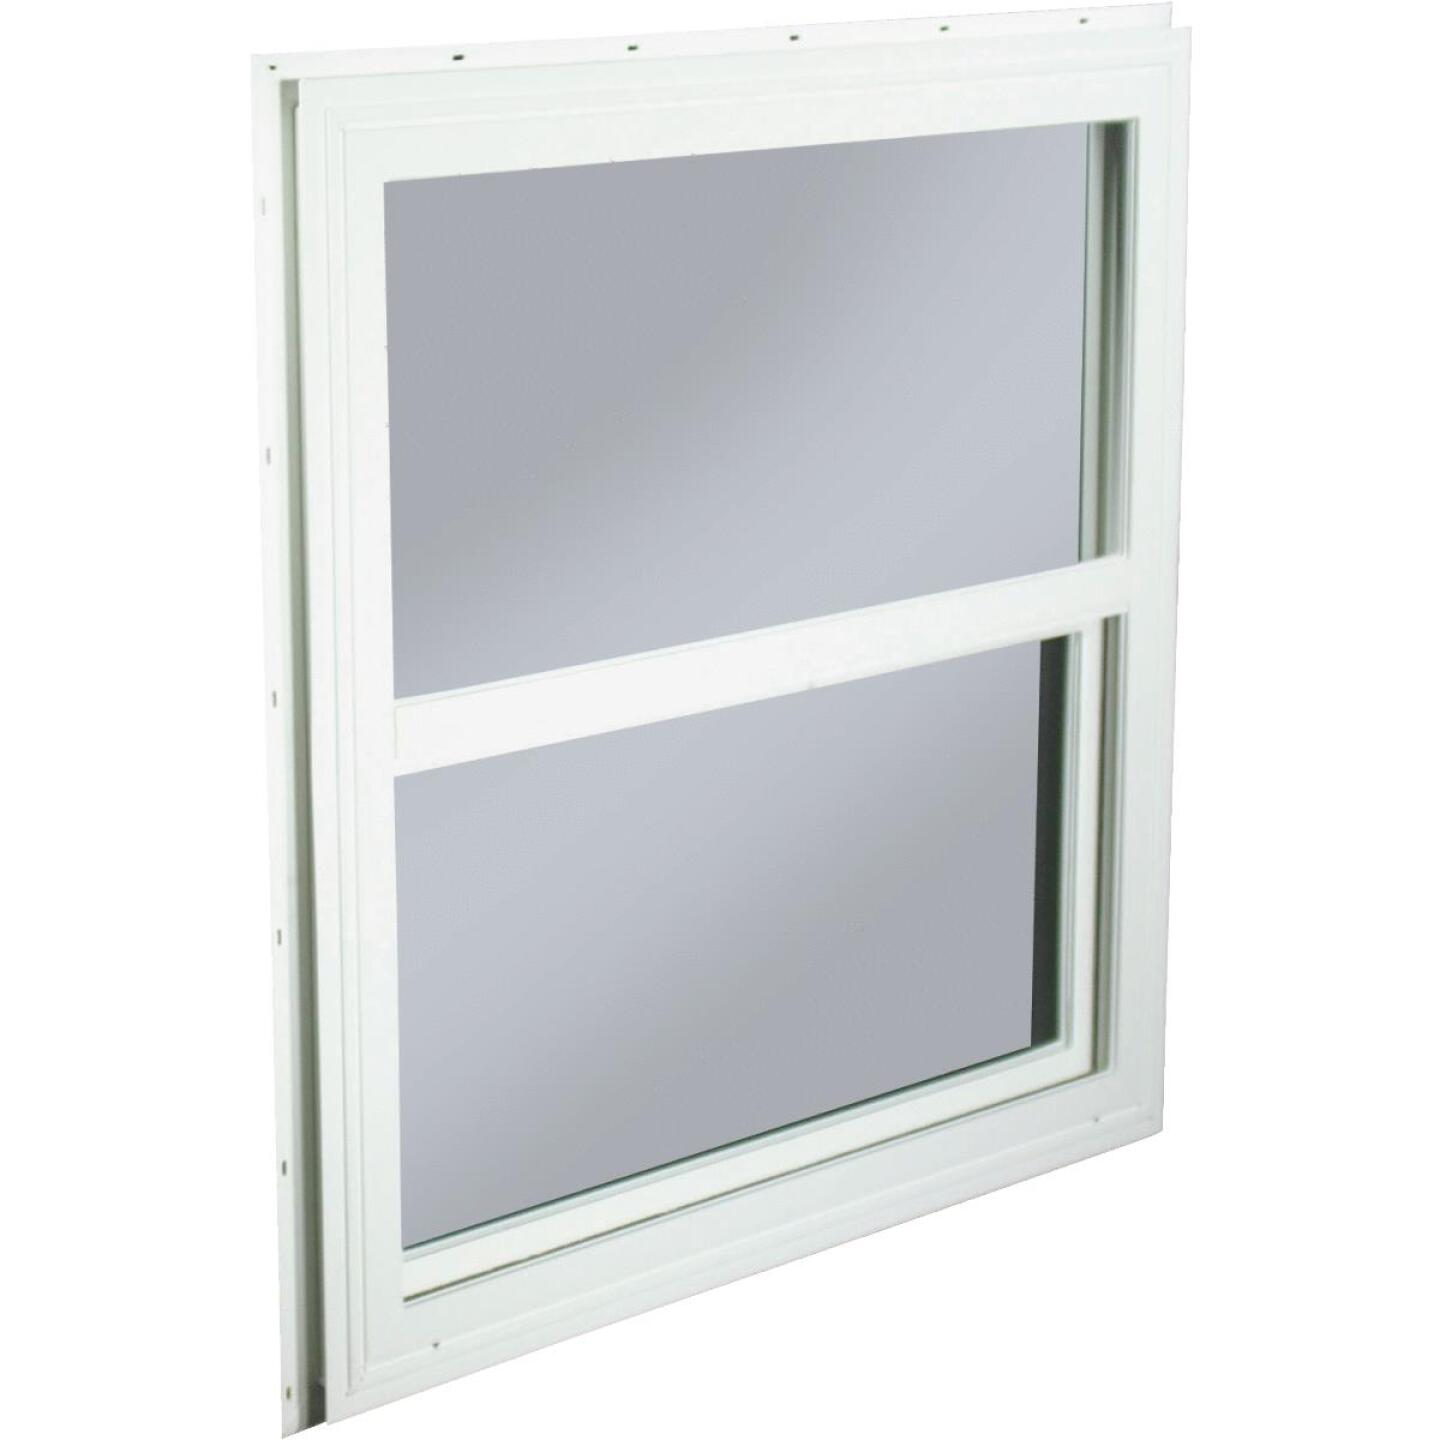 Northview 29-1/2 In. W. x 29-1/2 In. H. White PVC Traditional Single Glazed Single Hung Window Image 1